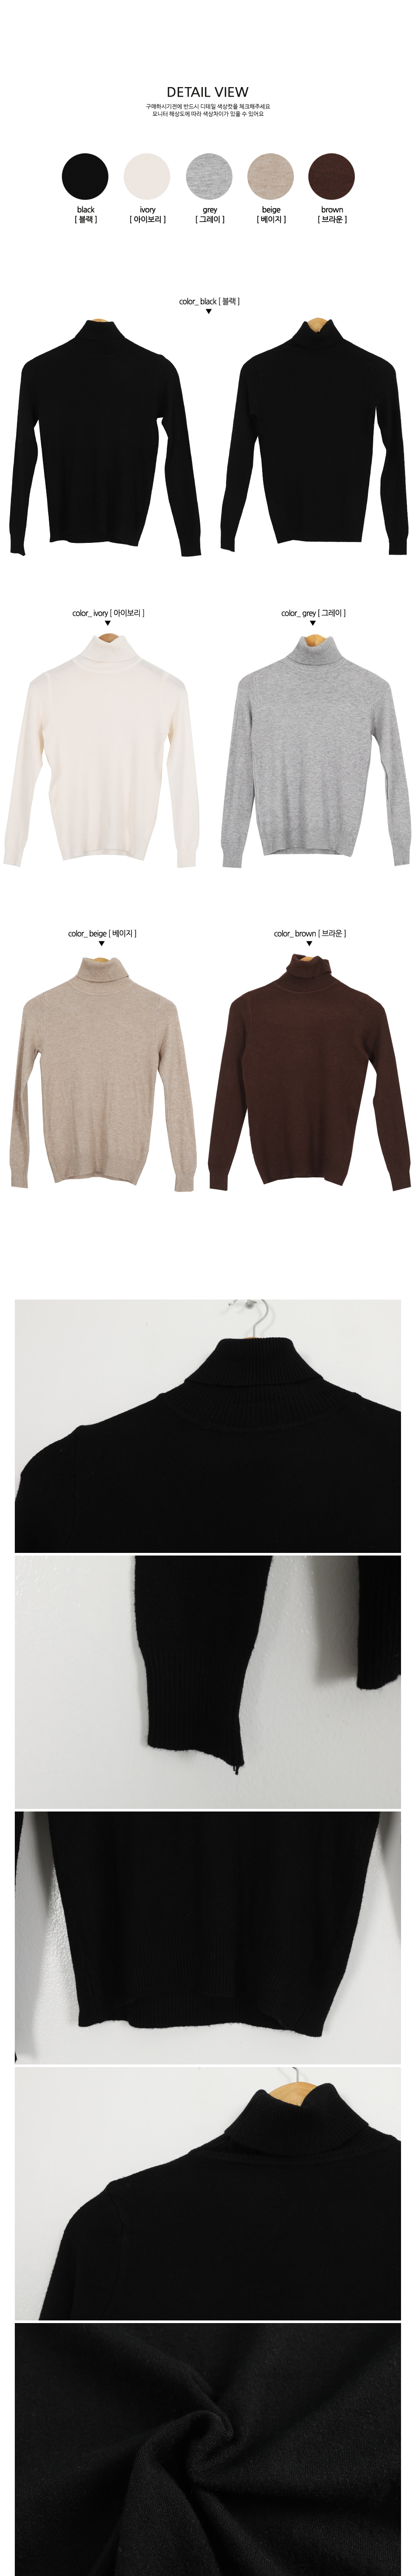 Ronettle Knit